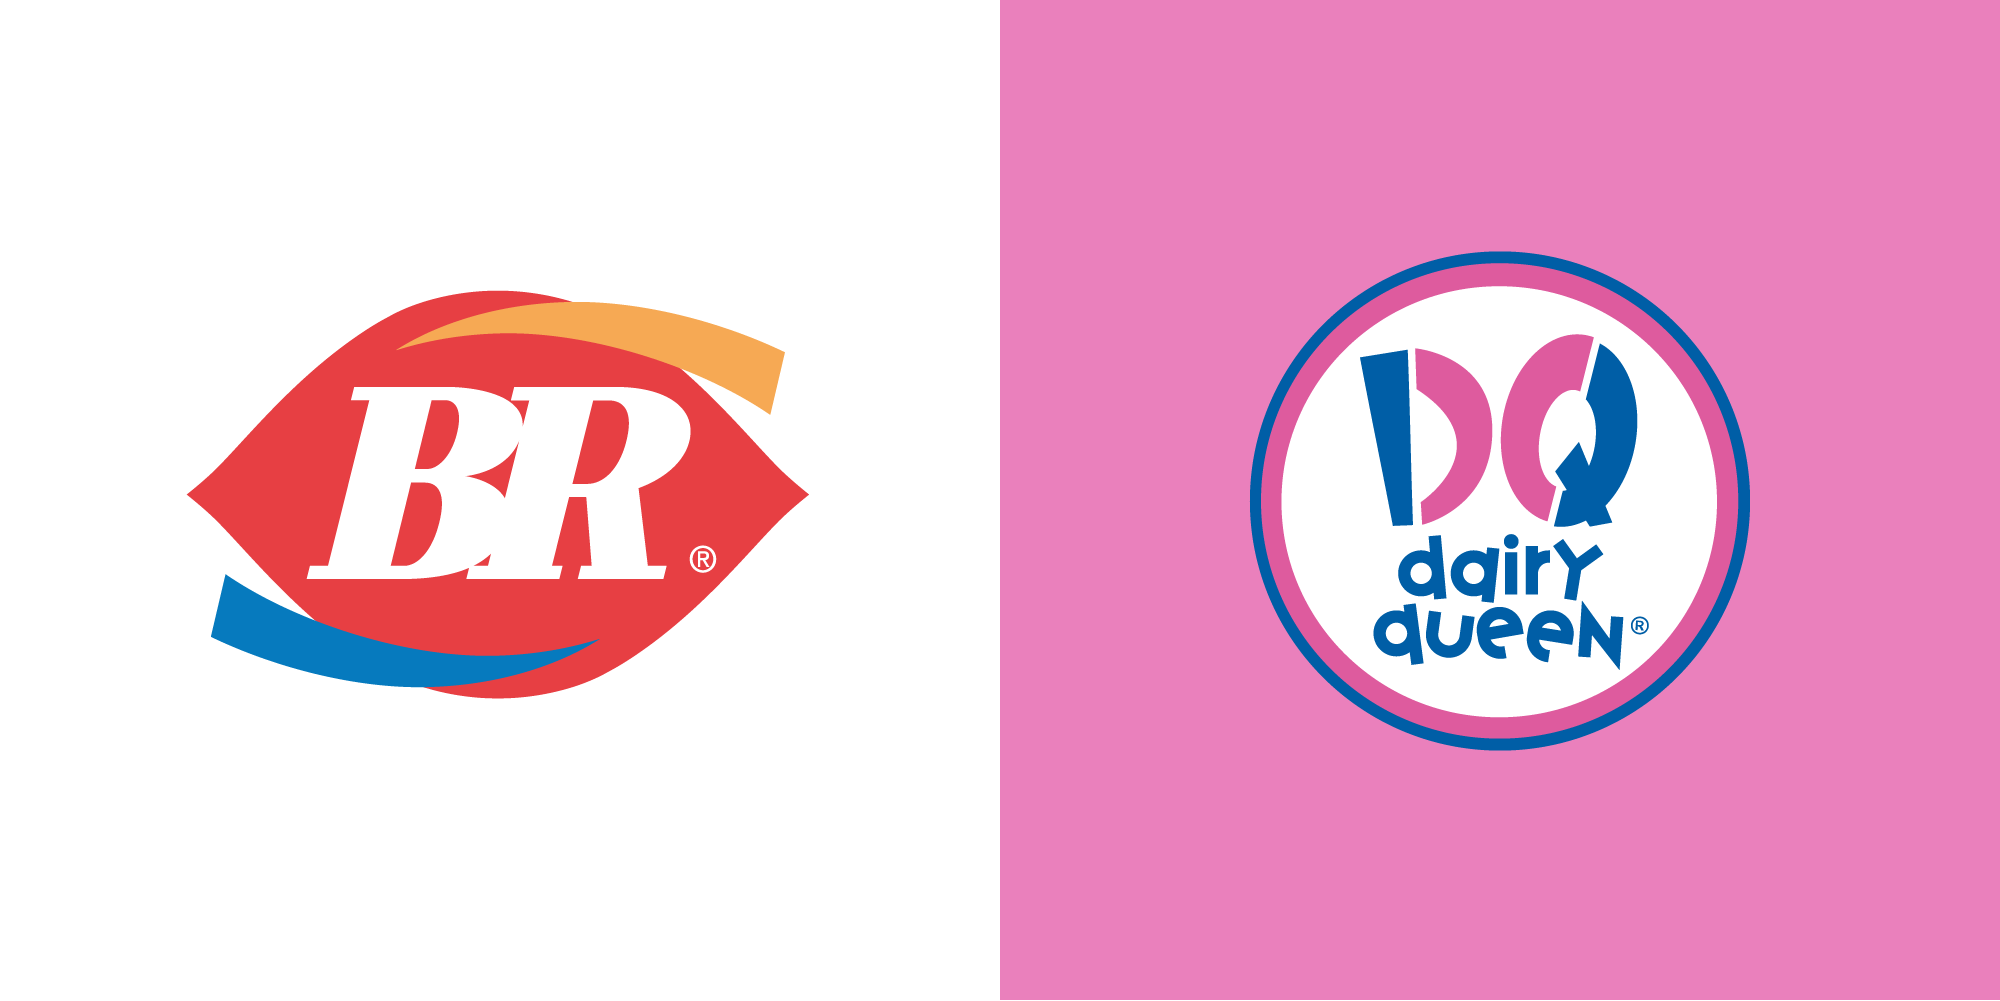 Baskin Robbins Vs Dairy Queen logo - CDA